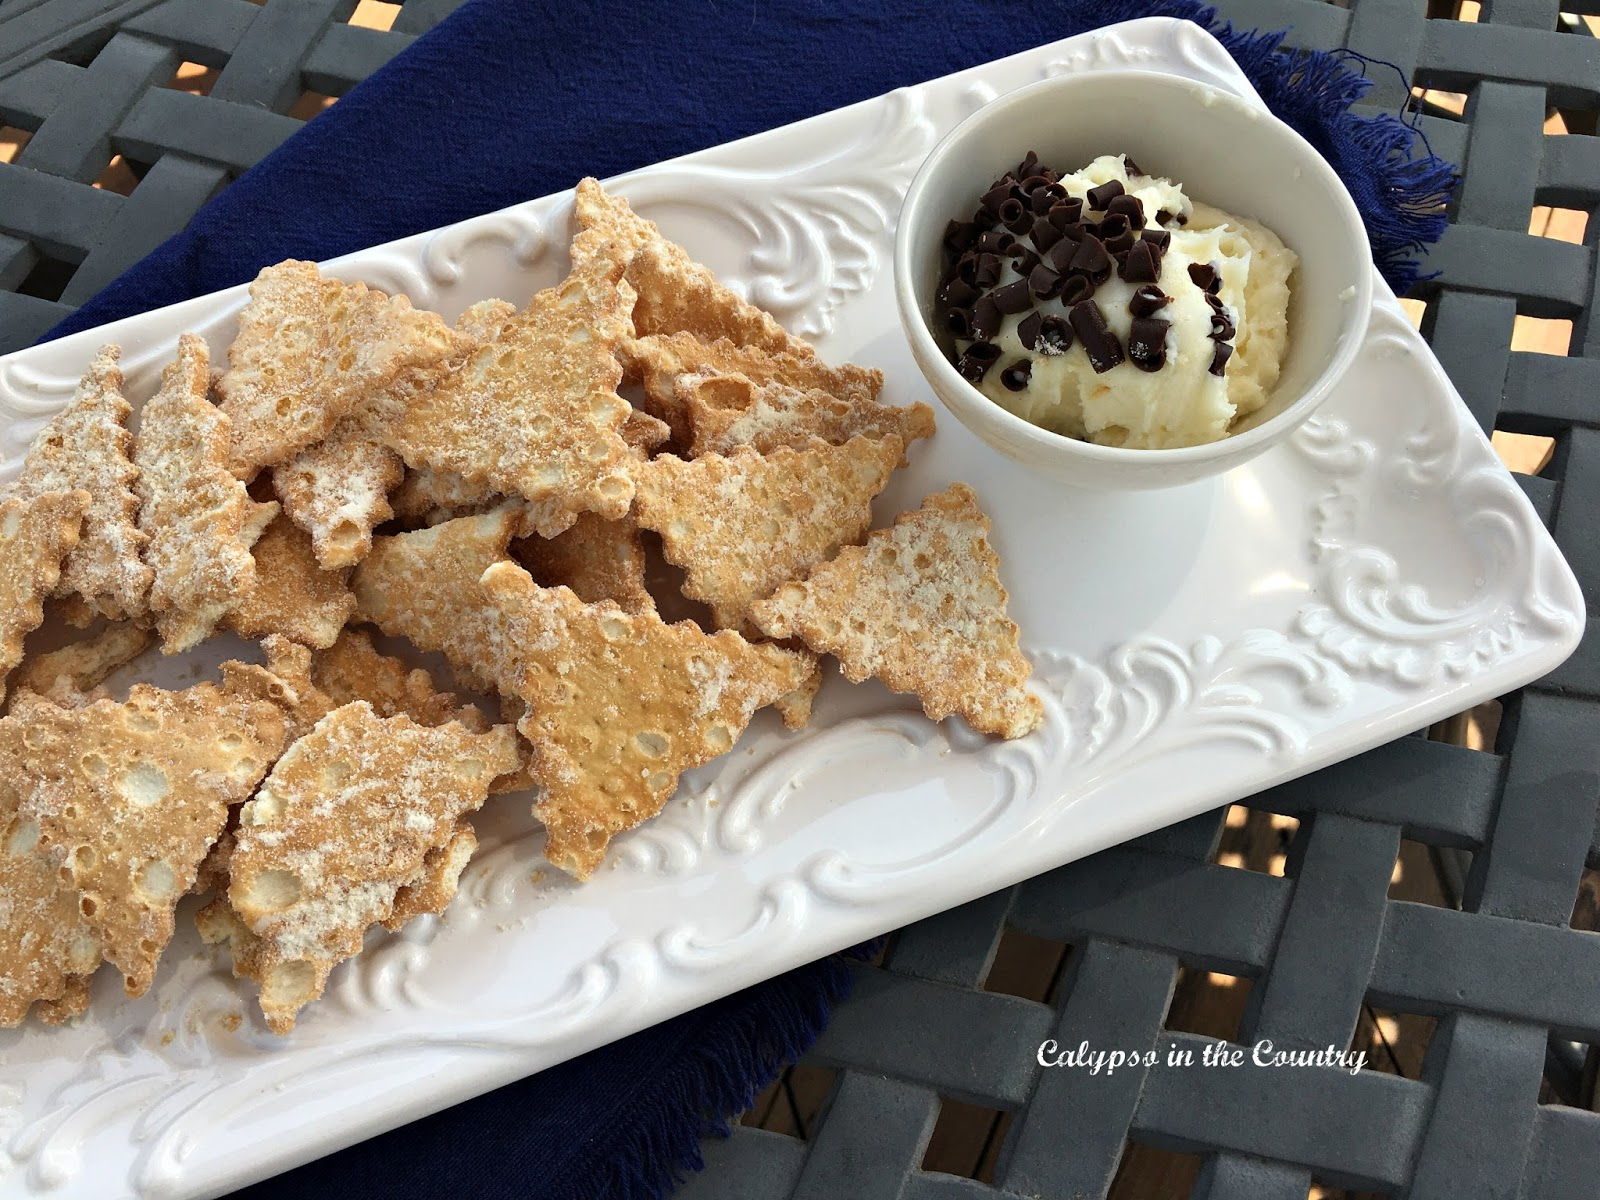 No Reason to Make Homemade! - Cannoli Chips and Dip